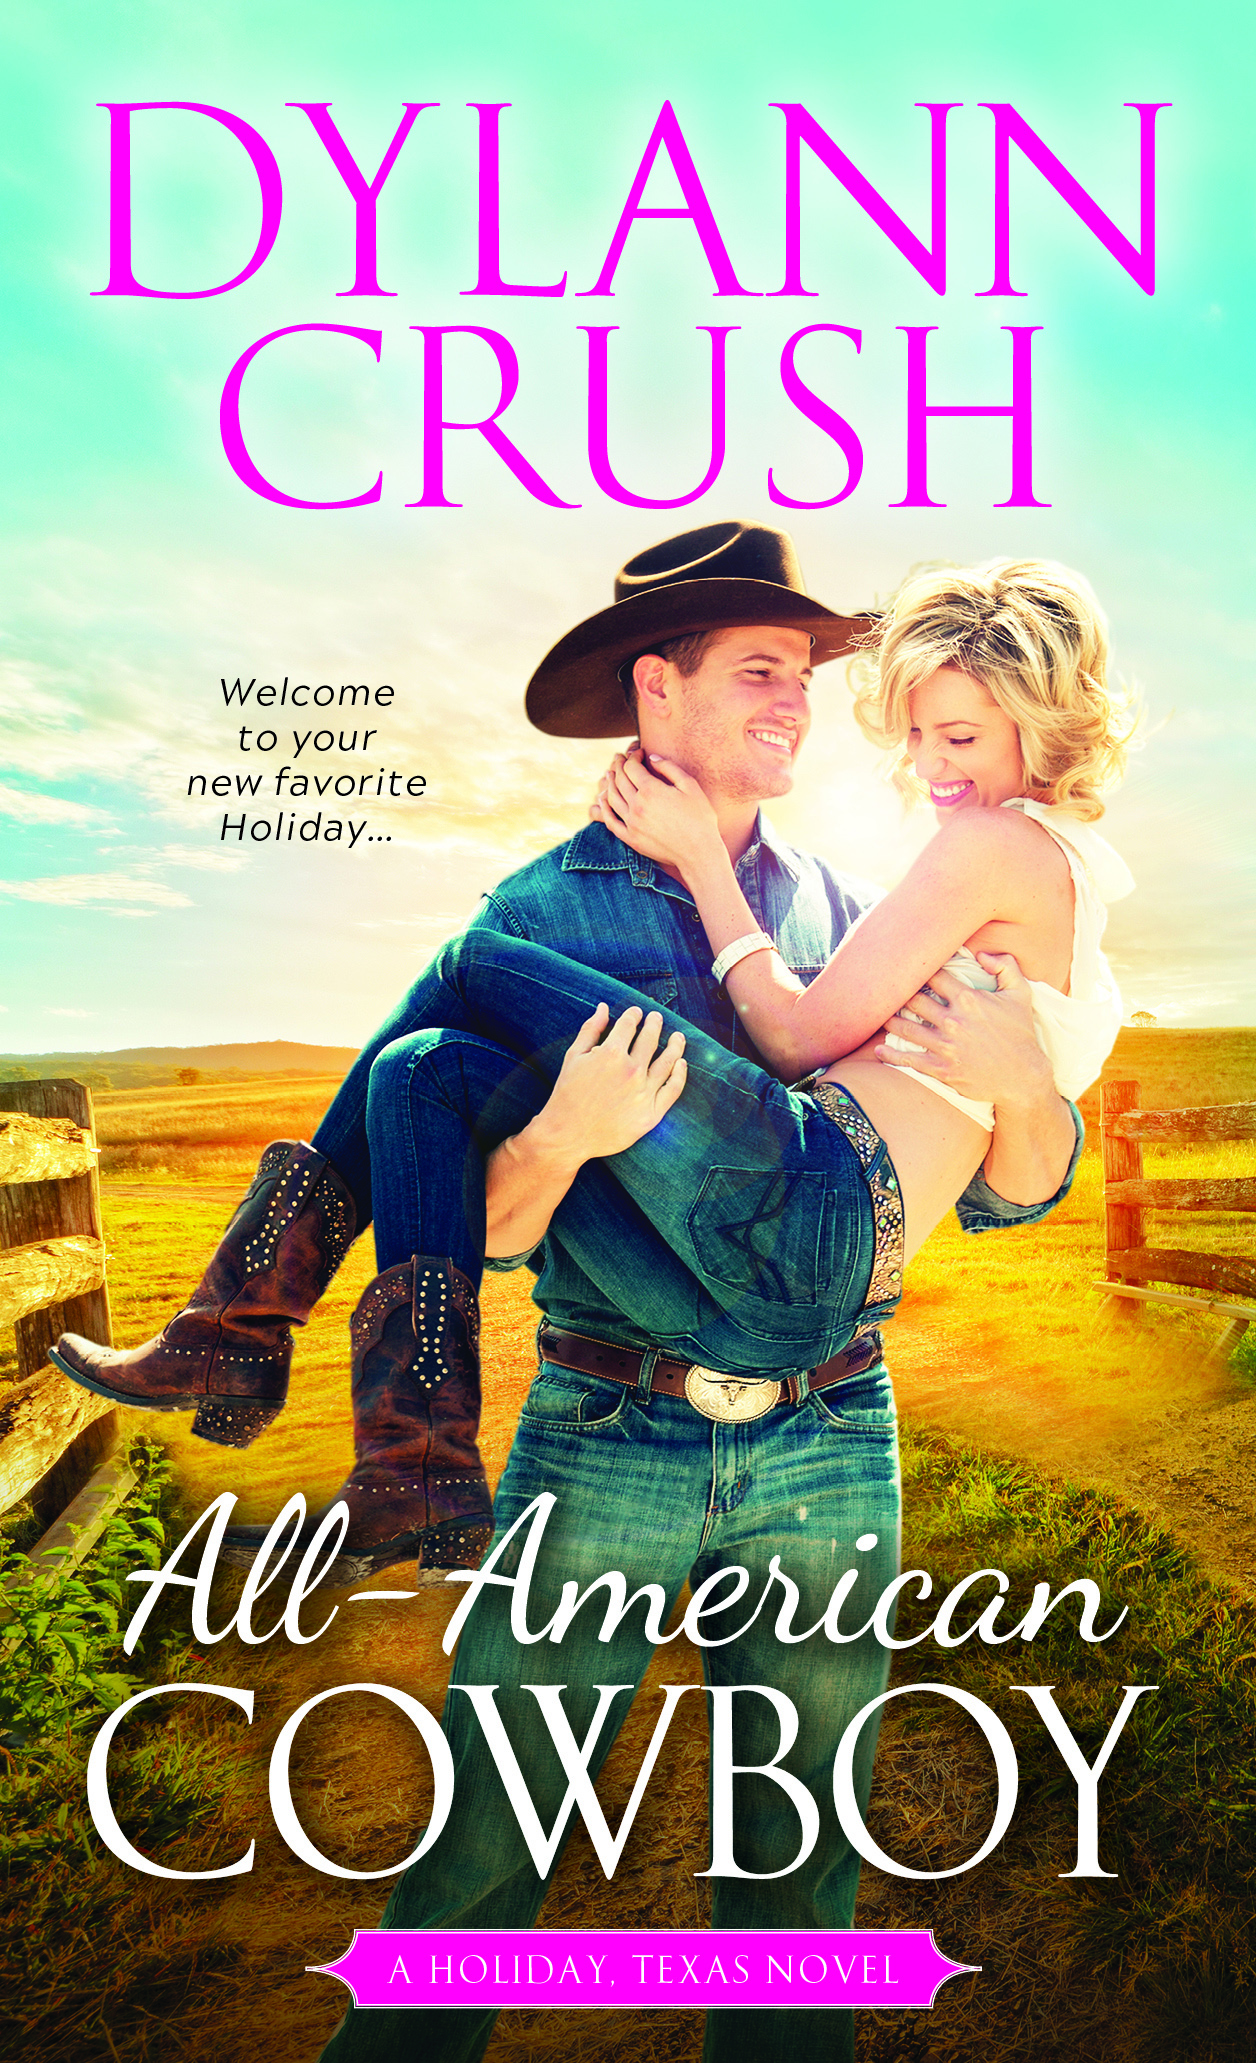 Cover Reveal for All-American Cowboy!